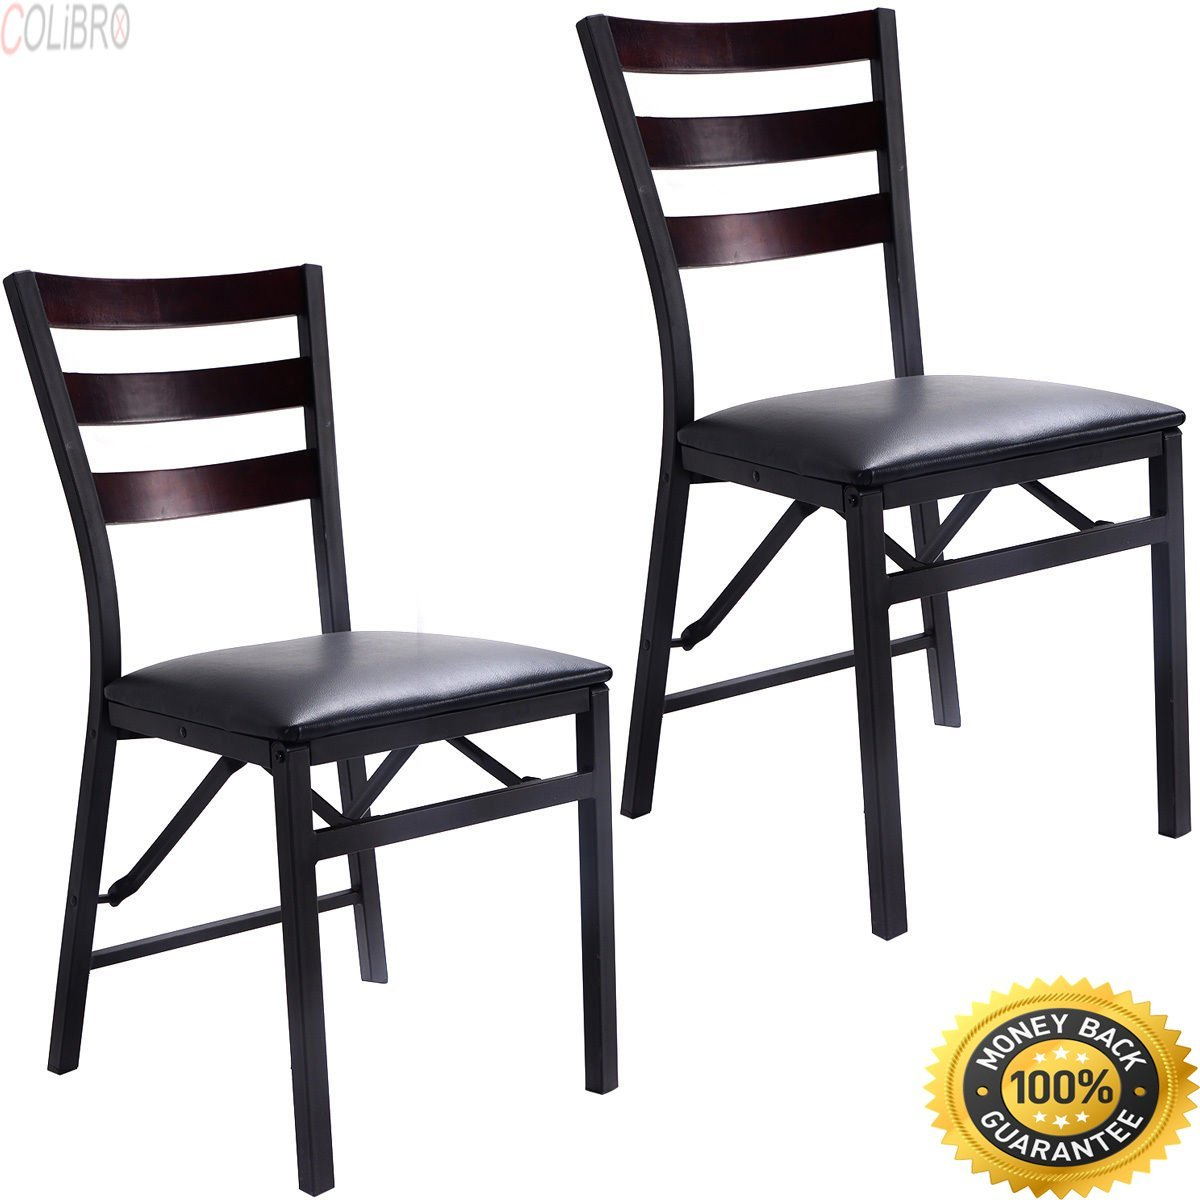 COLIBROX--Set of 2 Folding Chair Dining Chairs Home Restaurant Furniture Portable New Giantex Set of 2 Wood Folding Chair Dining Chairs Home Restaurant Furniture